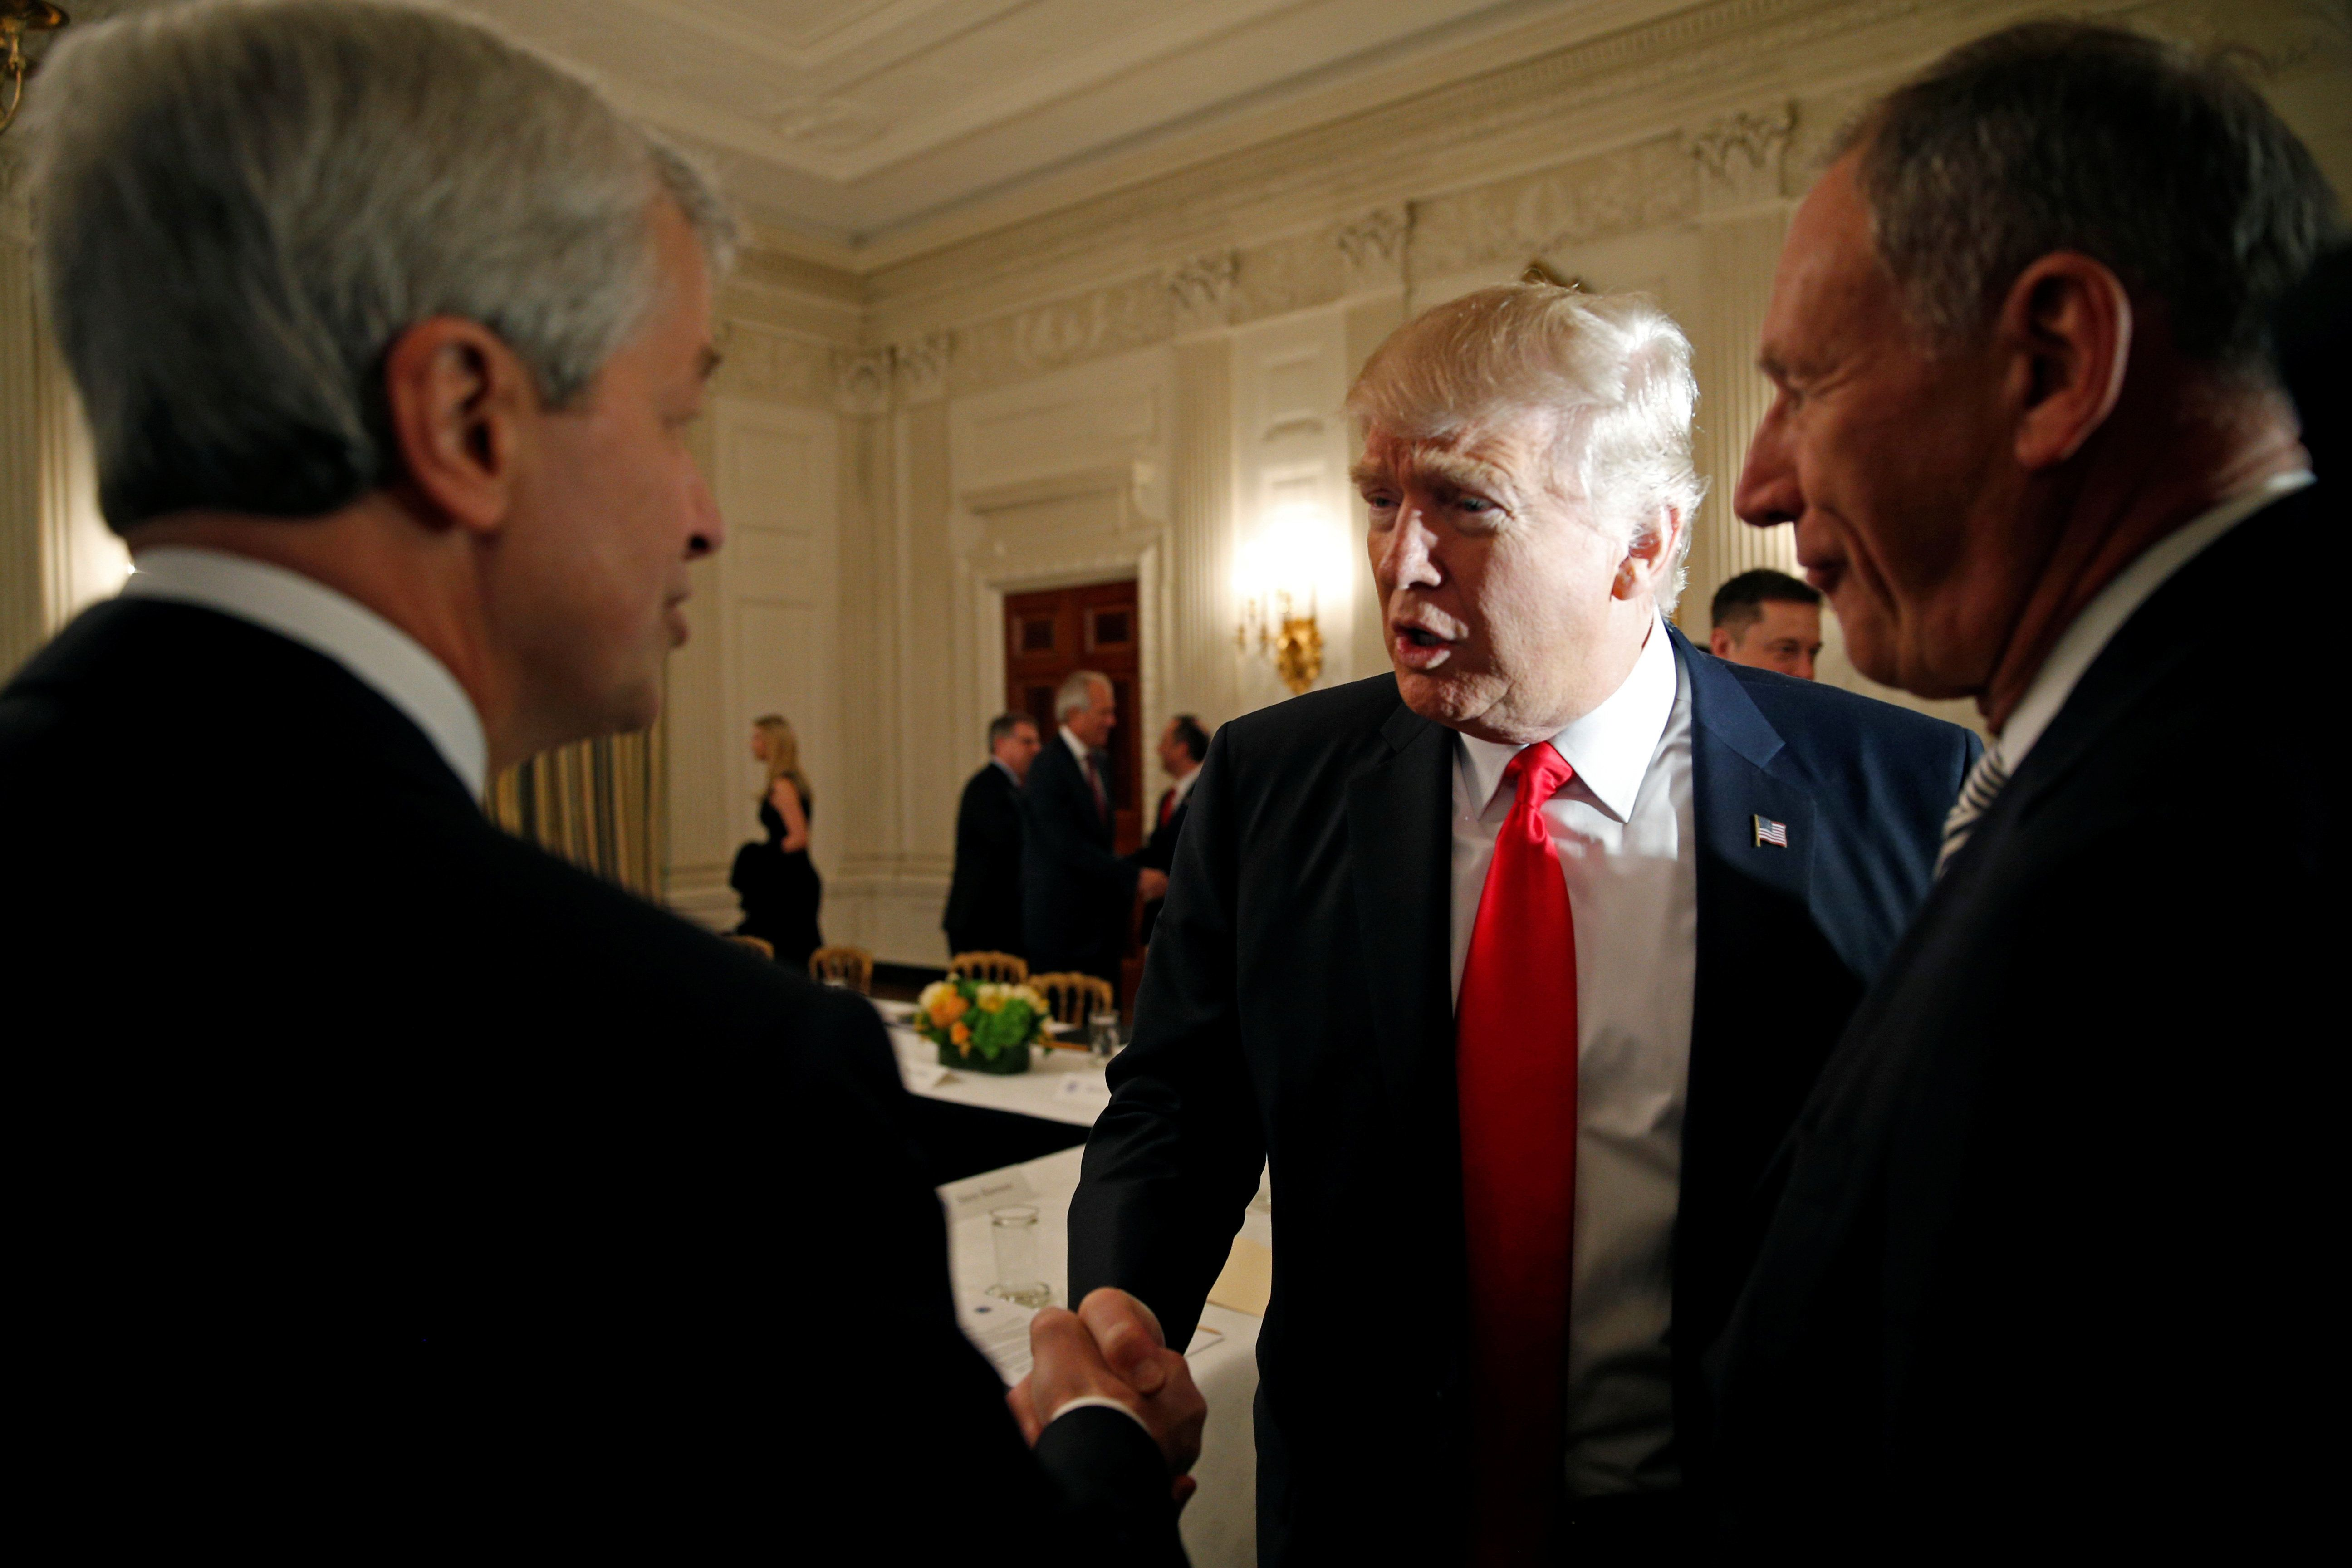 President Donald Trump shakes hands with JPMorgan Chase CEO Jamie Dimon at the White House in February 2017.